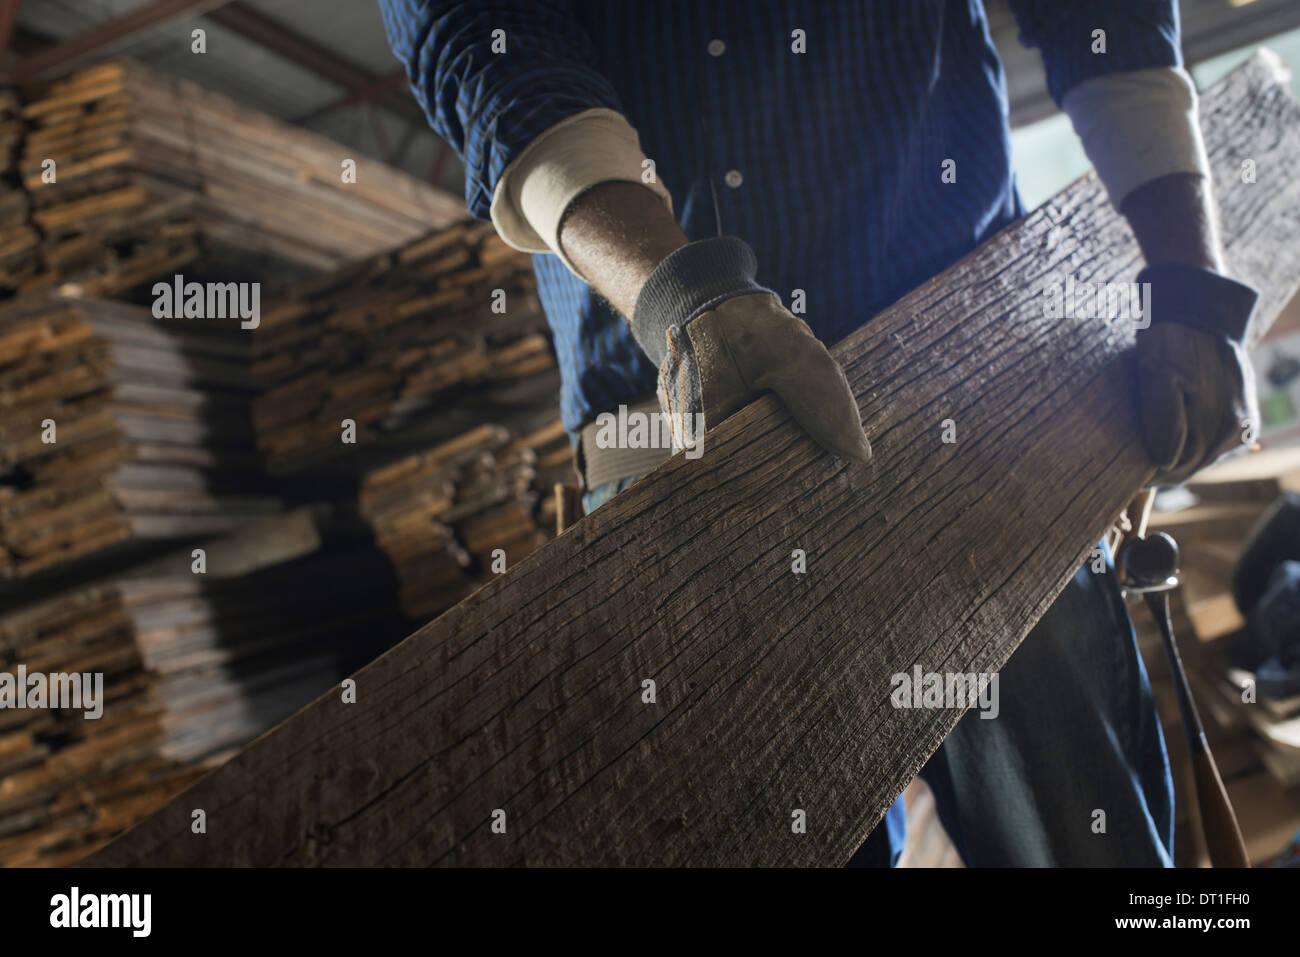 A heap of recycled reclaimed timber planks of wood in a timber yard A man carrying a large plank of wood - Stock Image